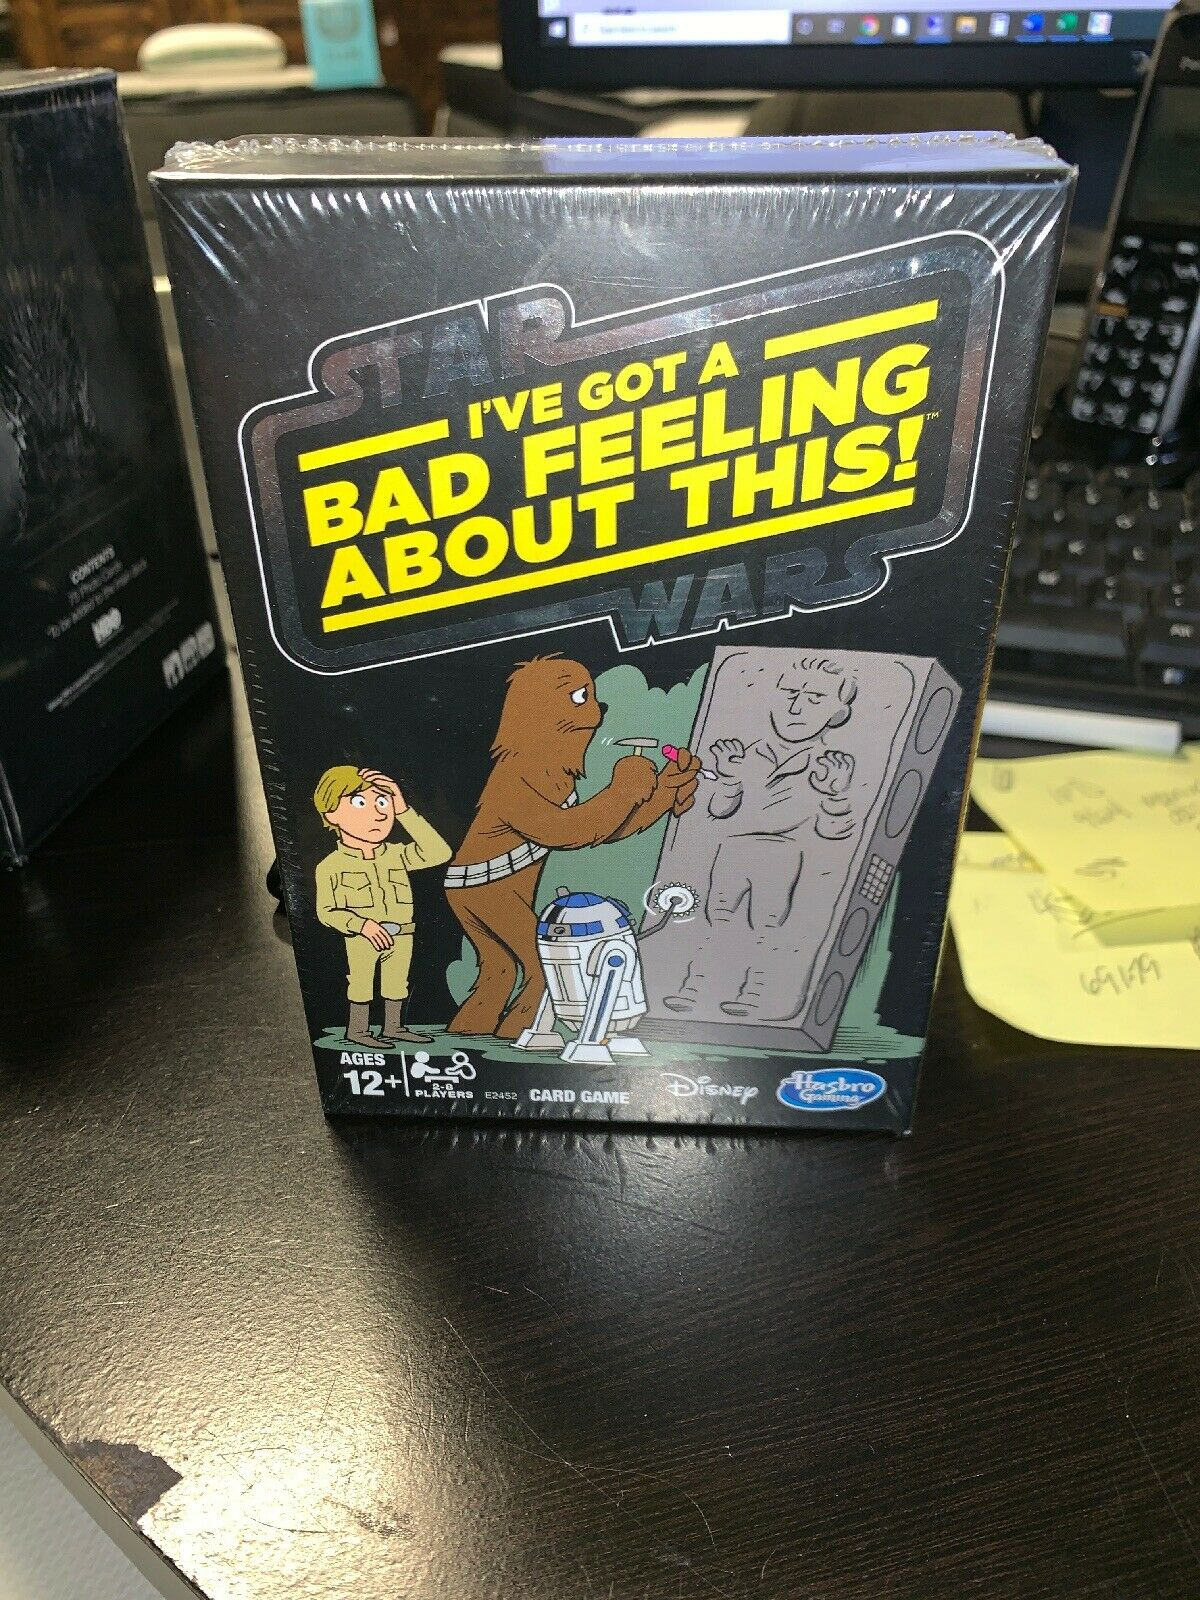 Star Wars Ive Got A Bad Feeling About This Card Game by Hasbro Disney Brand New